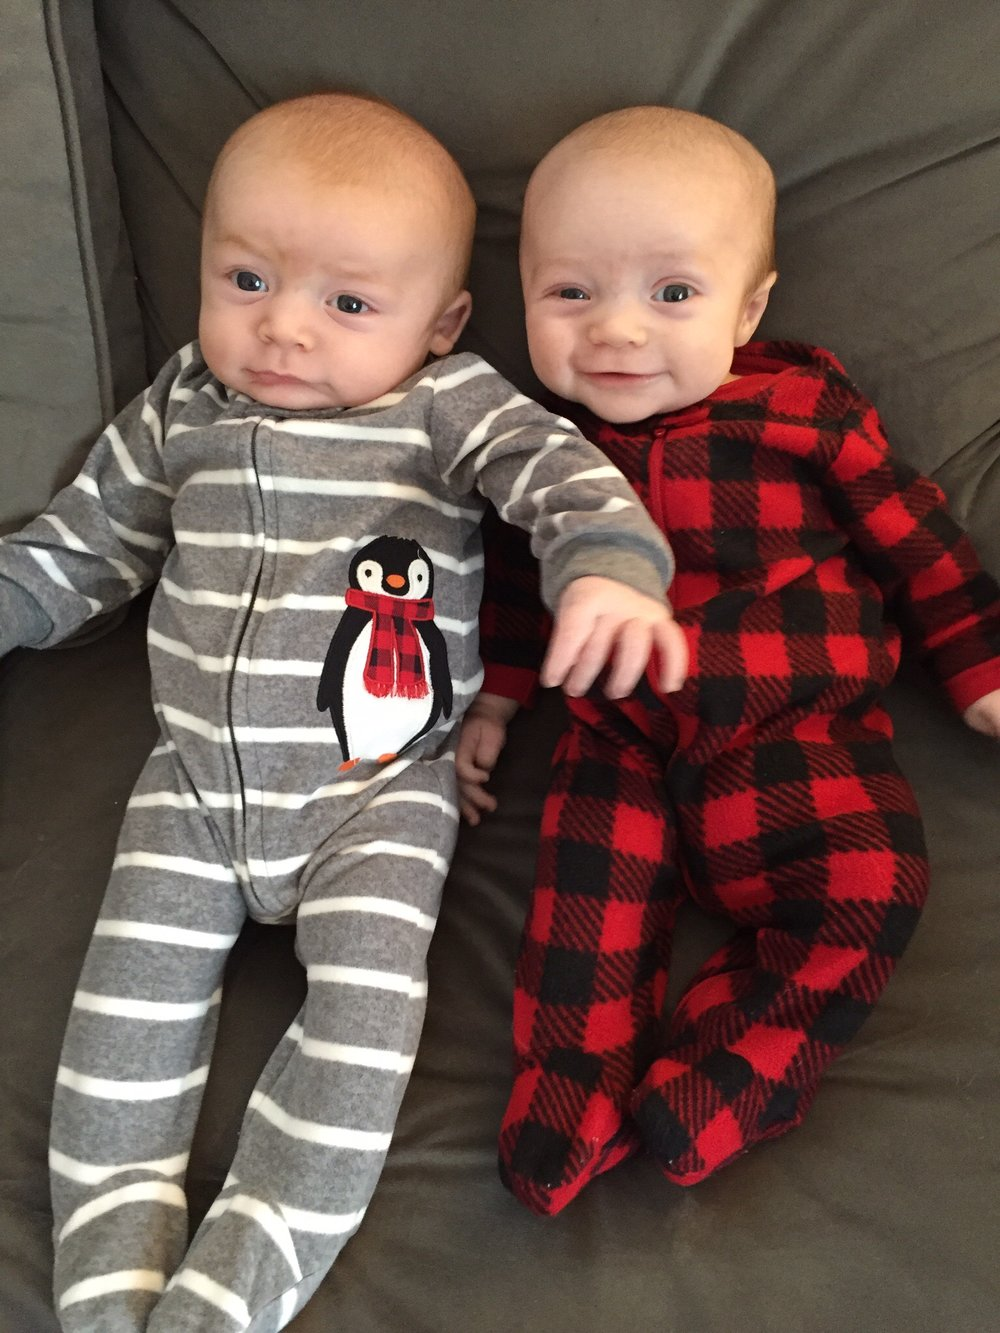 Joshua & Julian, 2 months old